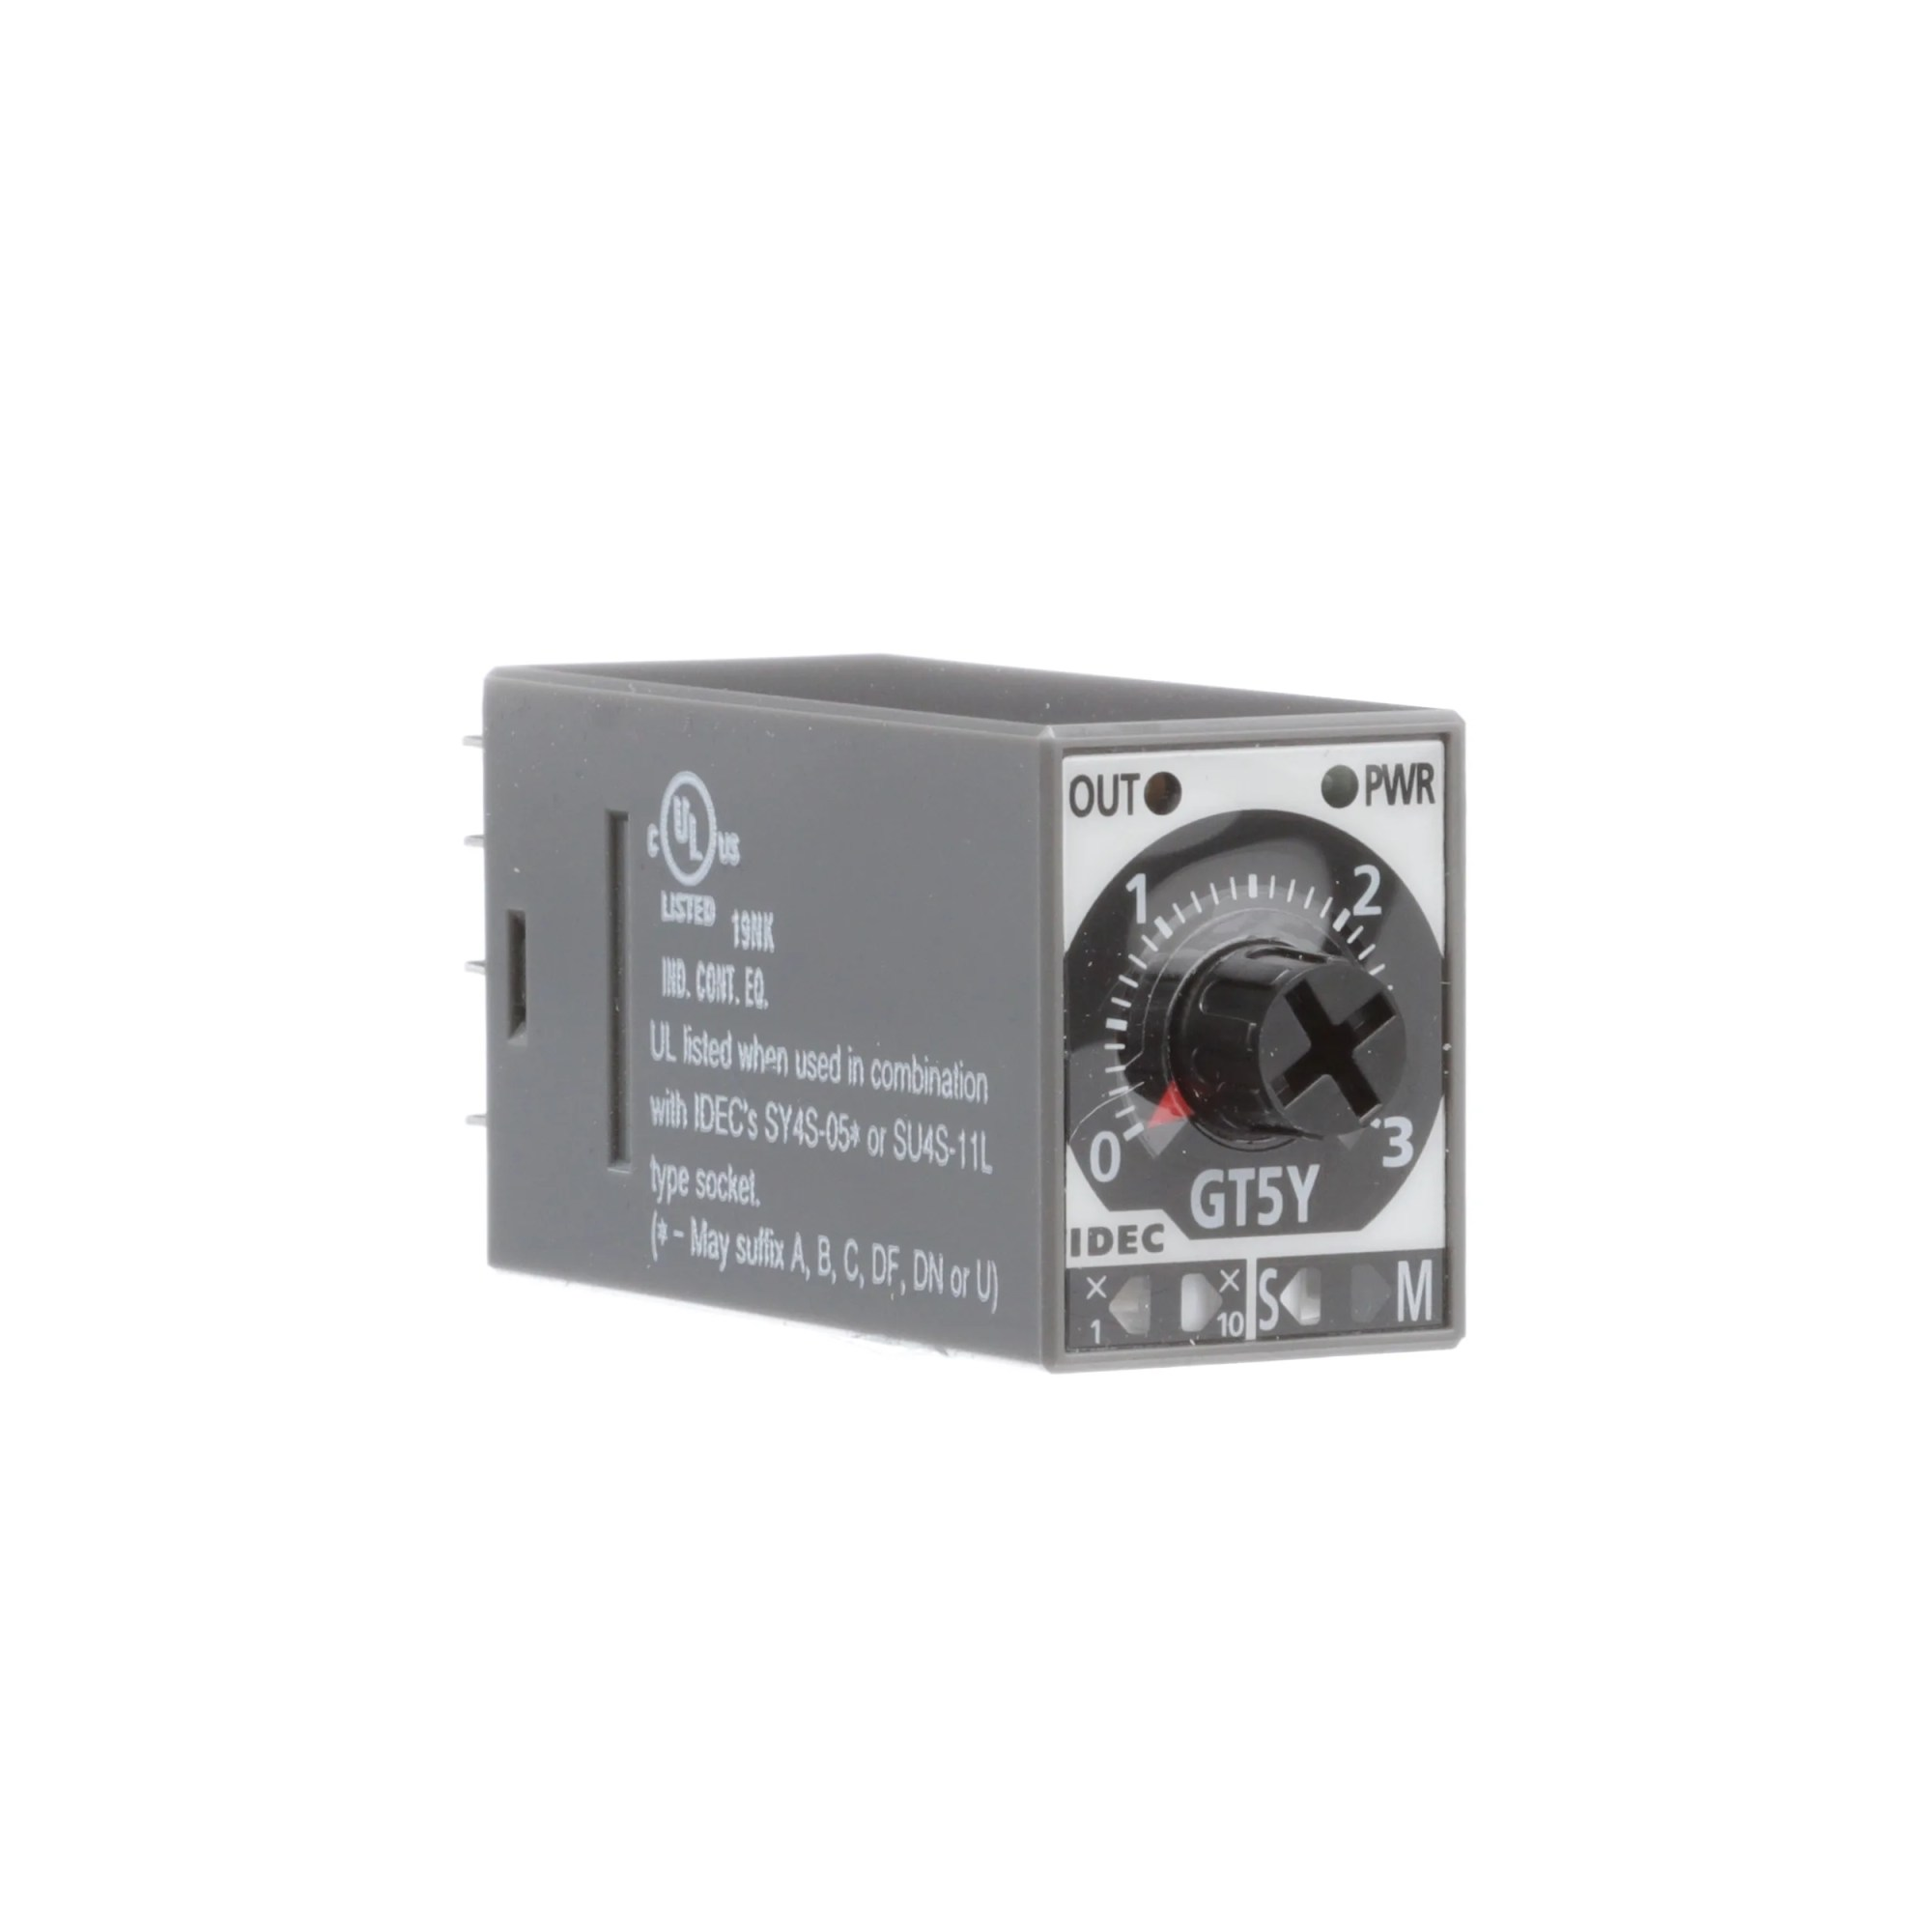 hight resolution of idec corporation gt5y 4sn3a100 relay e mech timing on delay 4pdt cur rtg 3a ctrl v 100 120ac plug in solder allied electronics automation